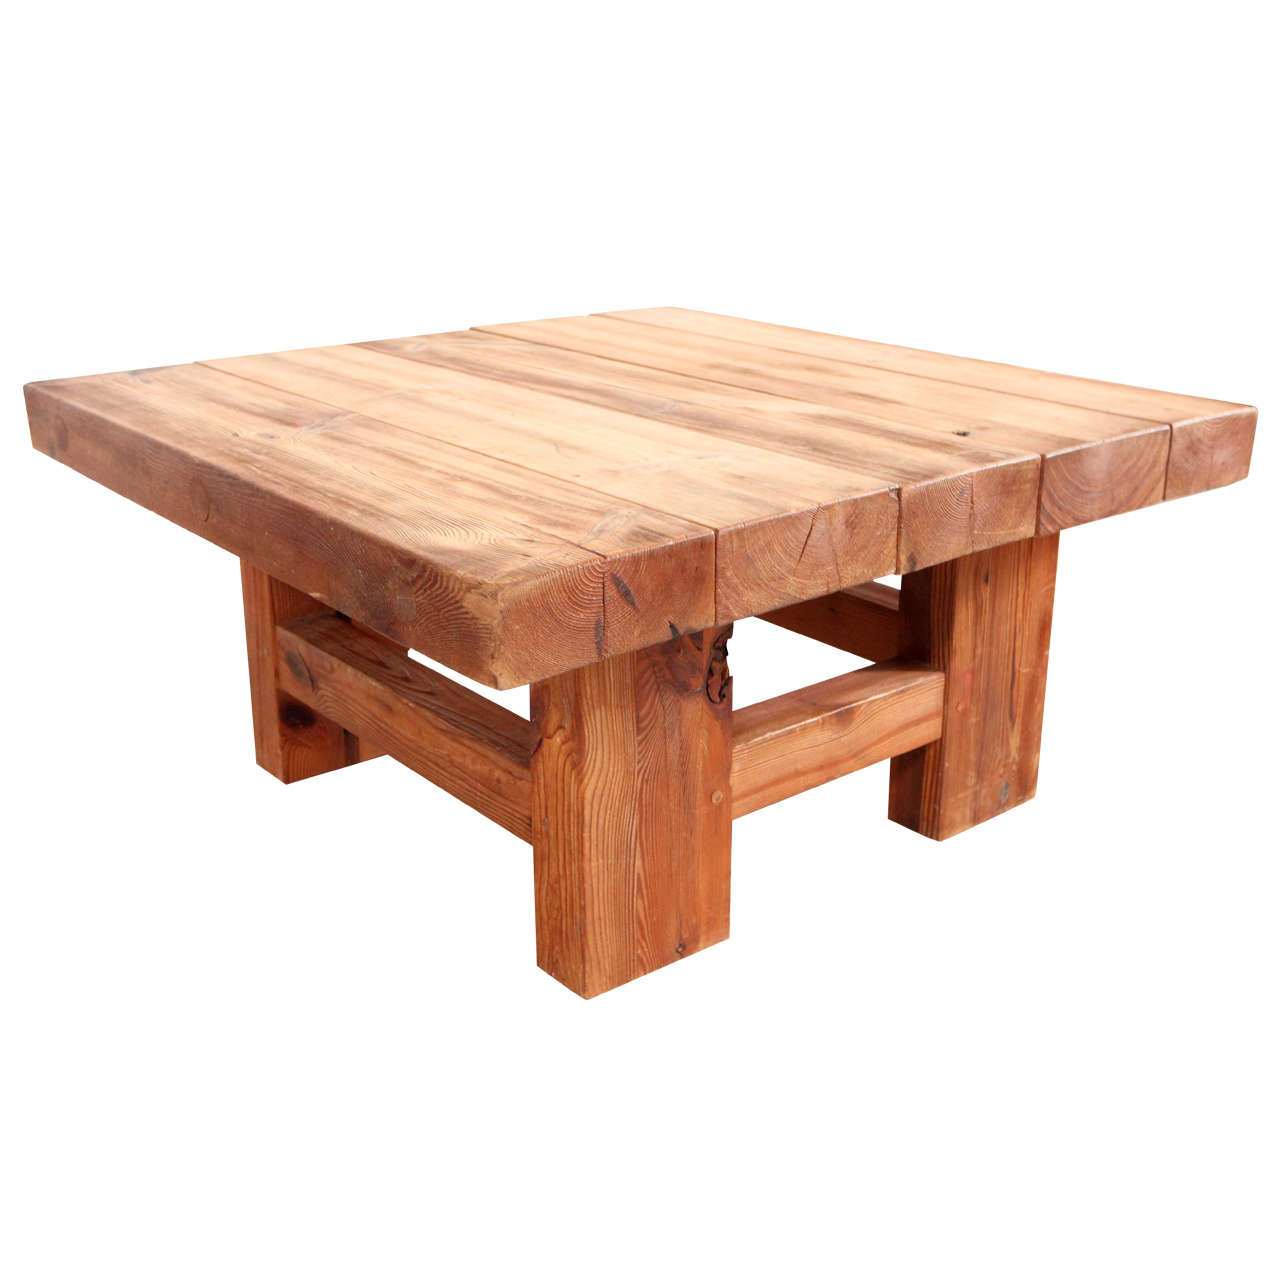 Rustic wood block square coffee table at 1stdibs Wood square coffee tables